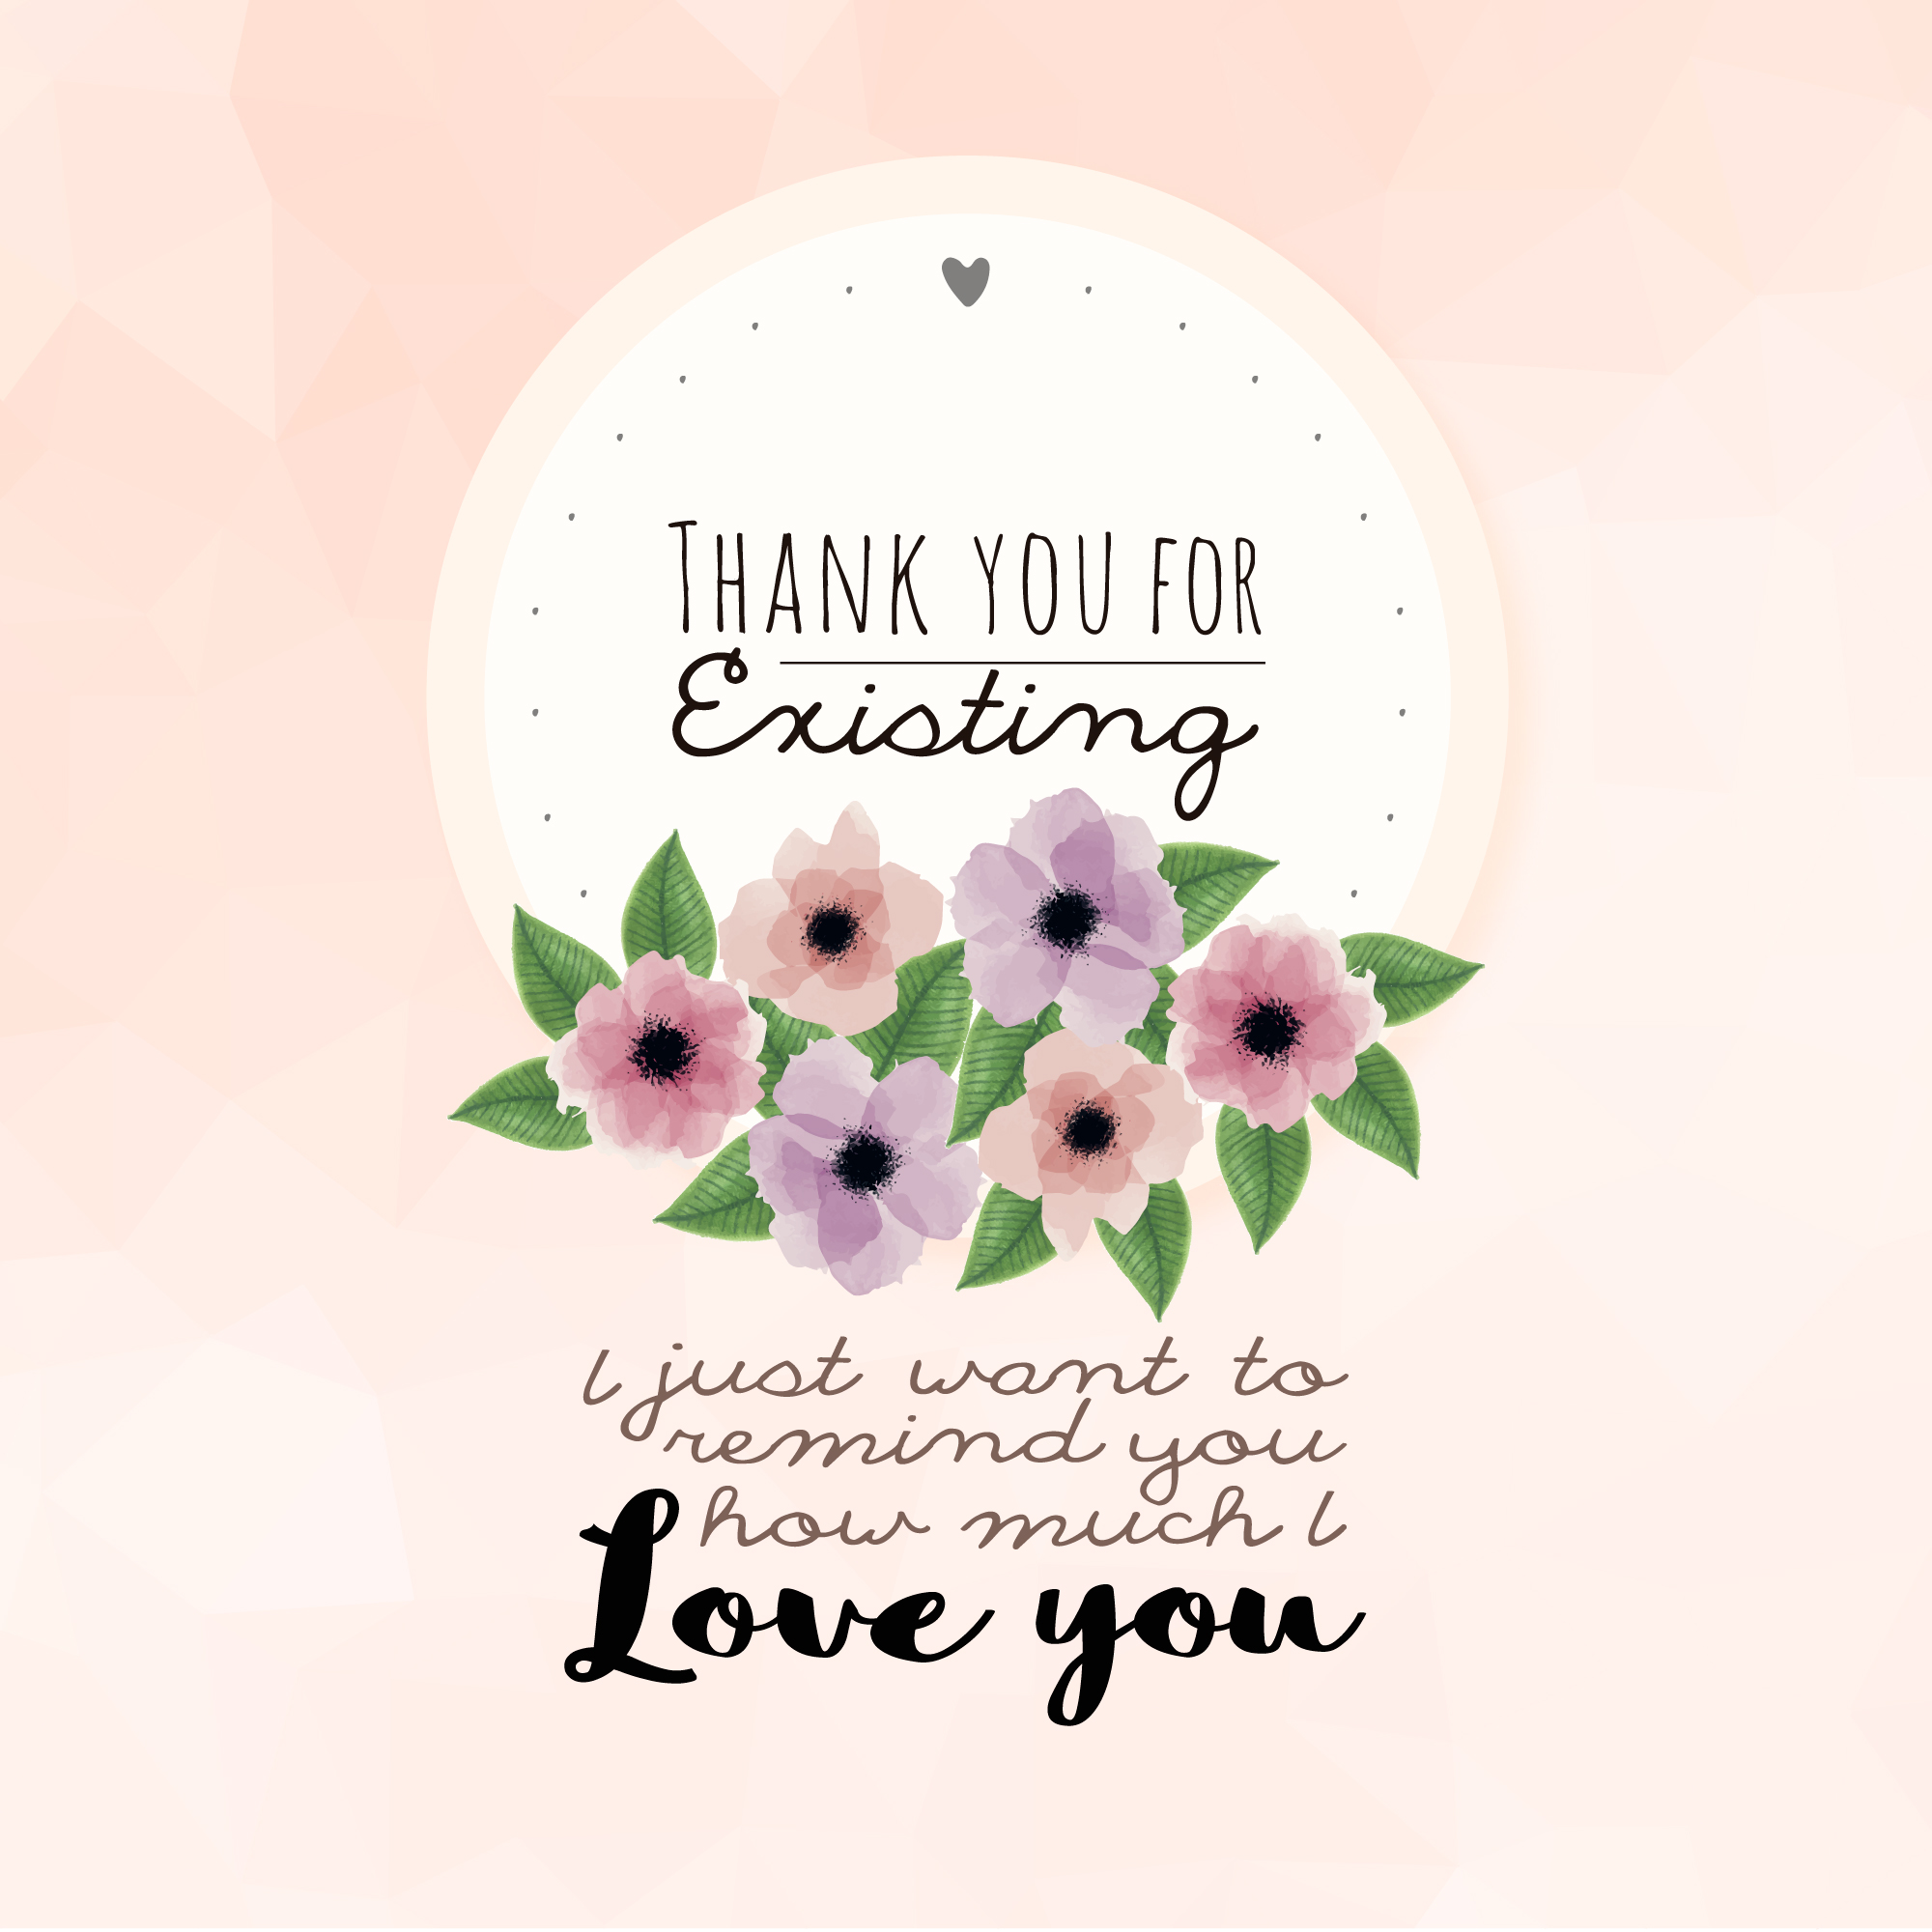 Watercolor floral background with a love quote